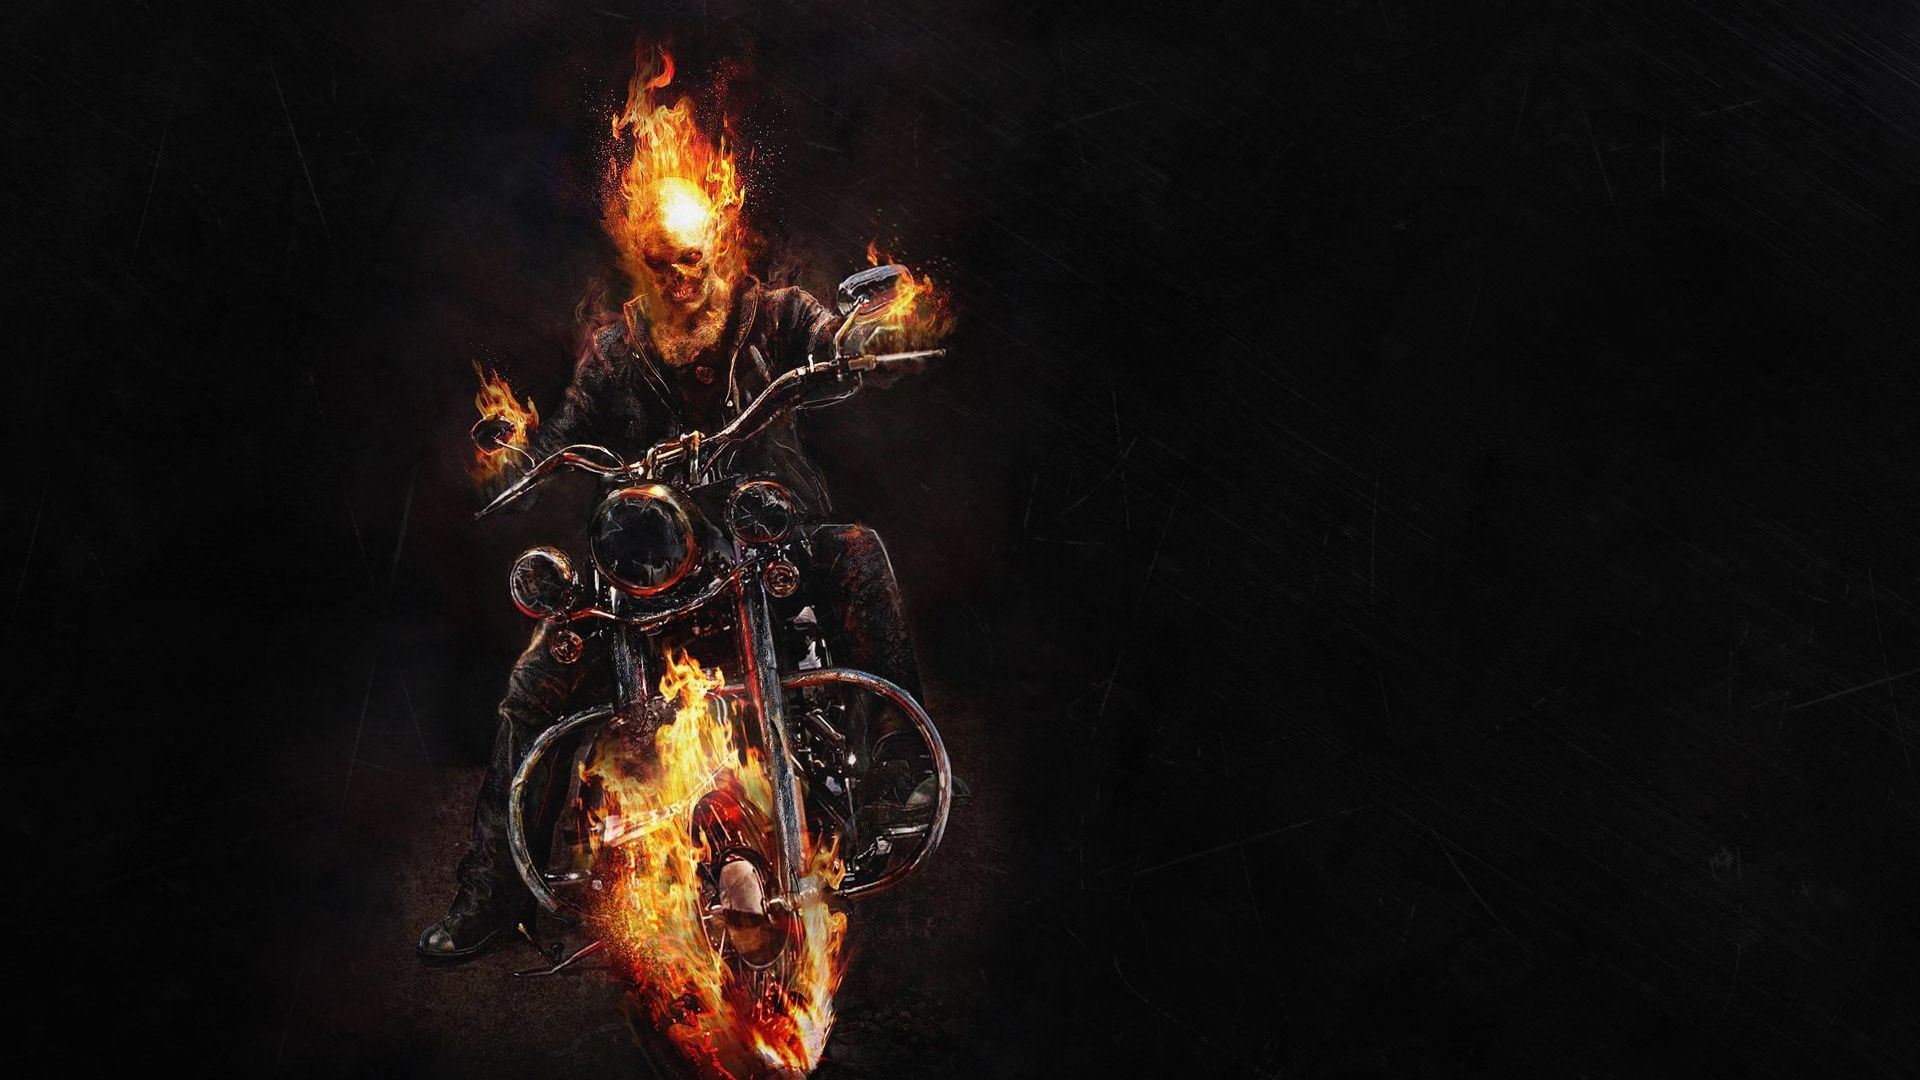 ghost rider hd wallpapers 1920×1080 download ghost rider wallpapers